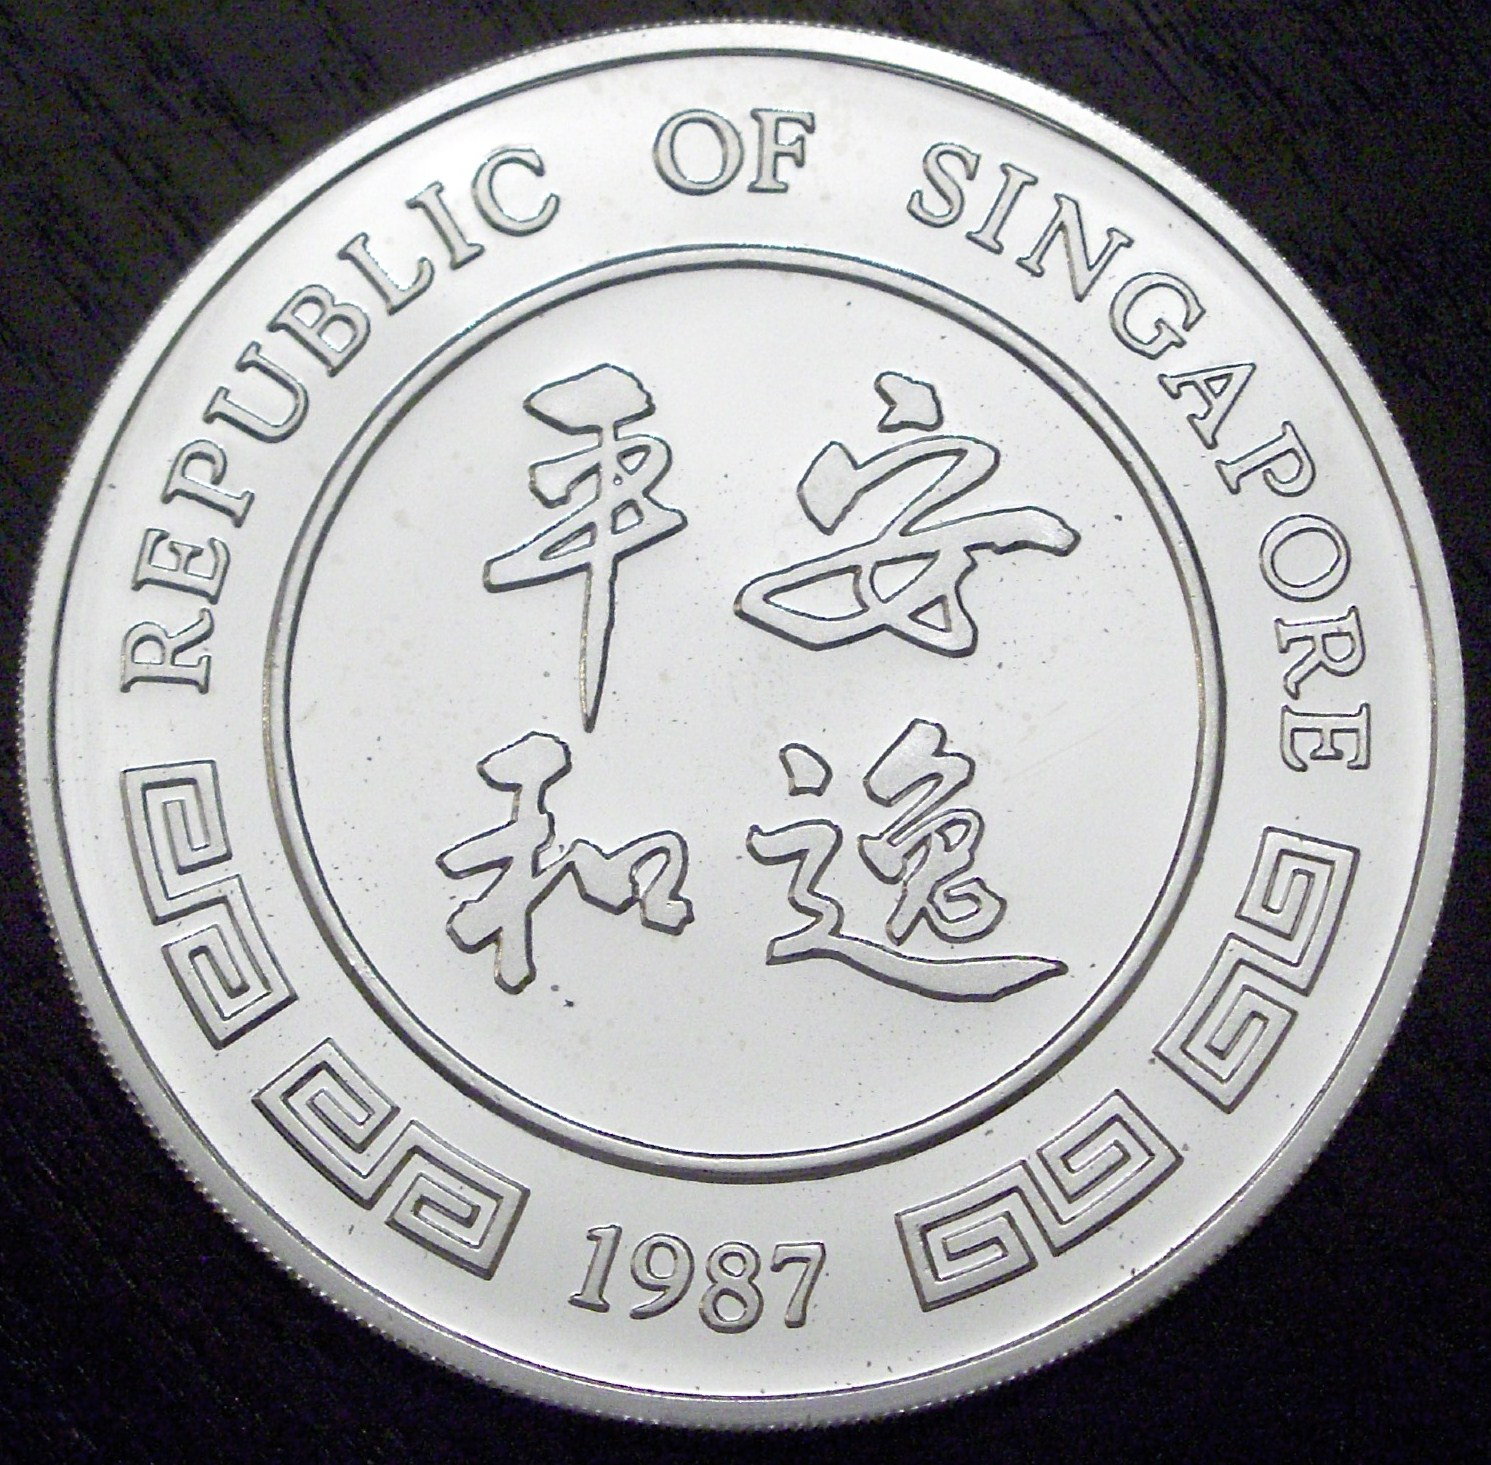 Singapore 1987 5 Ounces Rabbit back